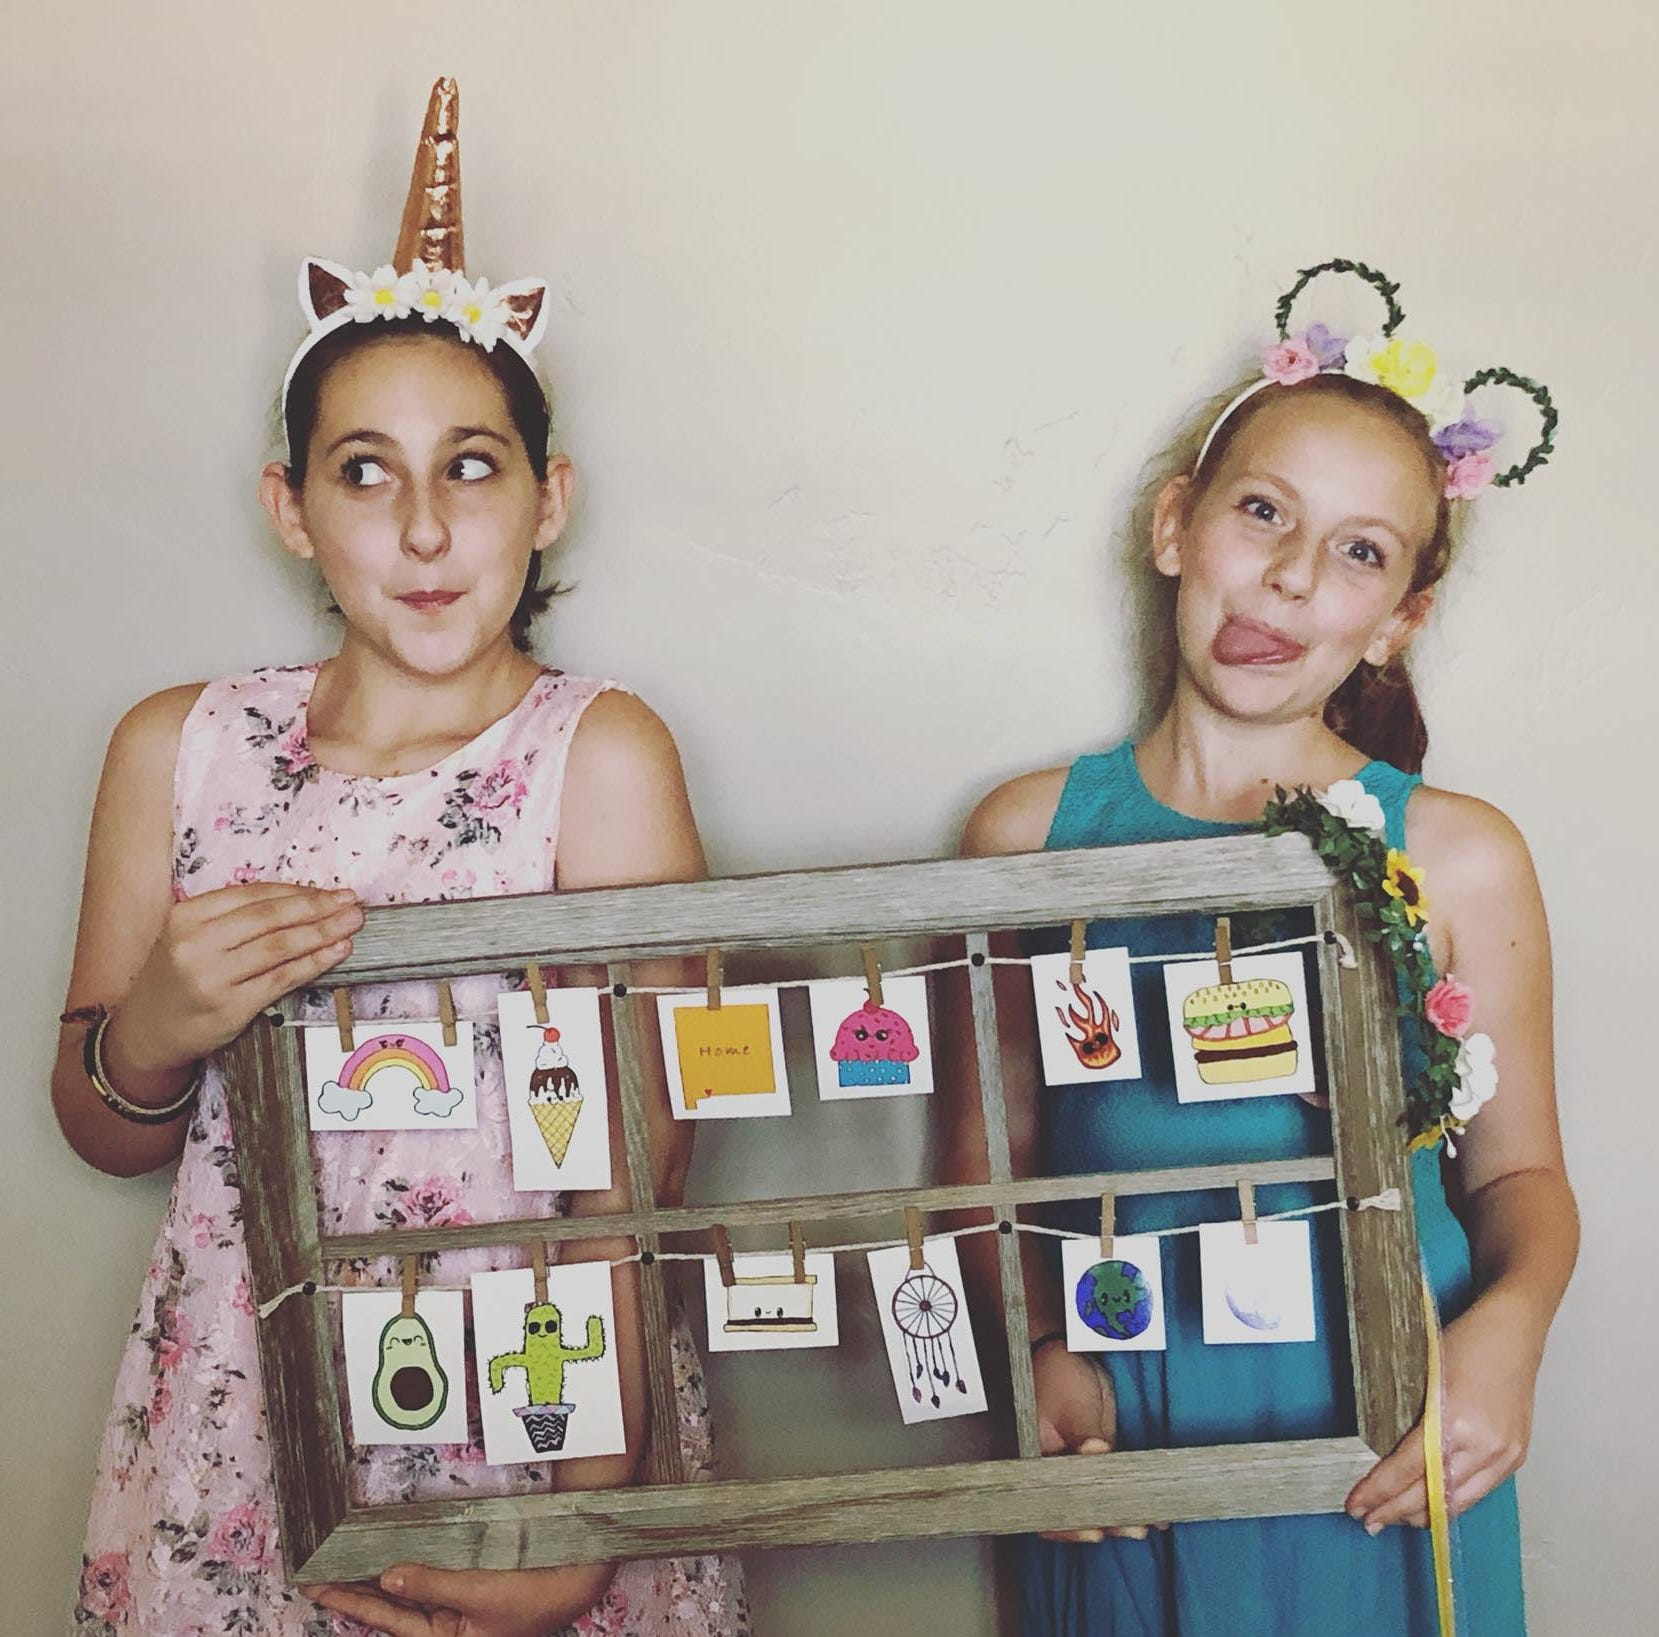 Youth entrepreneur: Find hair accessories, more at Polka Dot Boutique